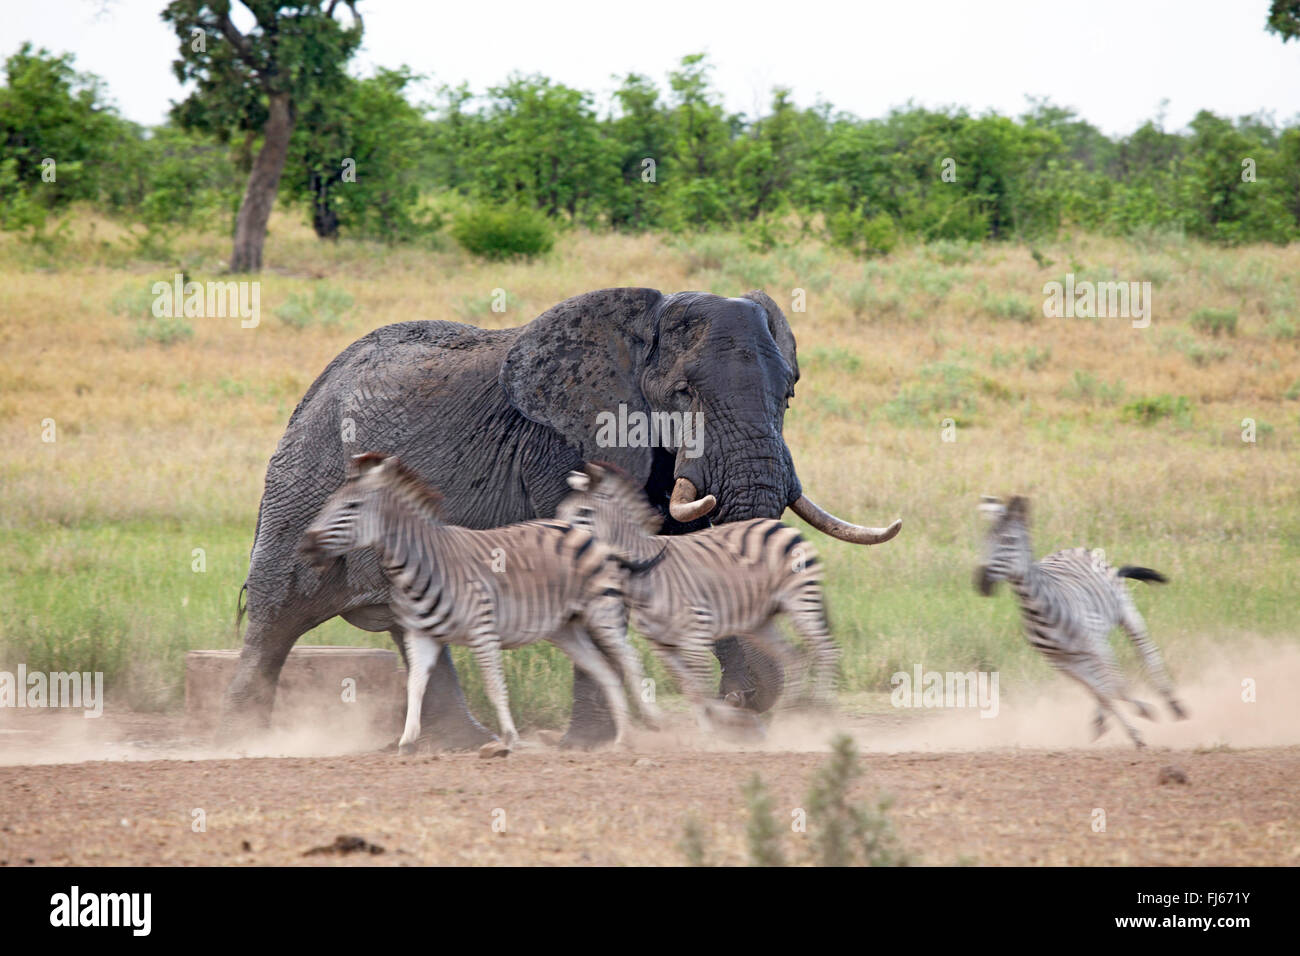 African elephant (Loxodonta africana), chasing zebras at a water place, South Africa, Krueger National Park - Stock Image